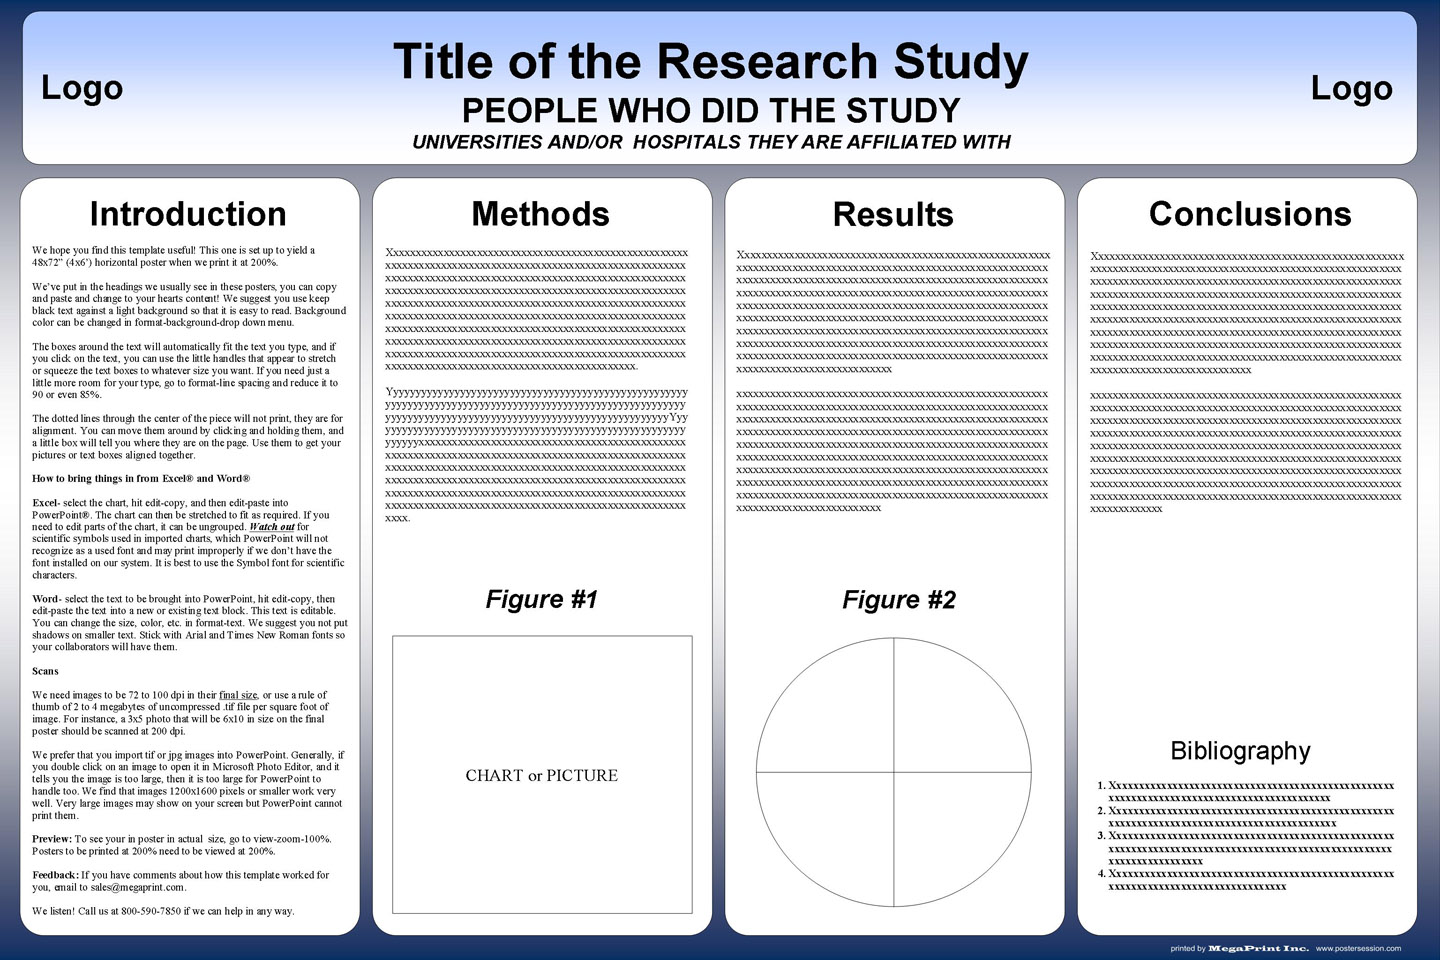 free powerpoint scientific research poster templates for printing, Presentation templates